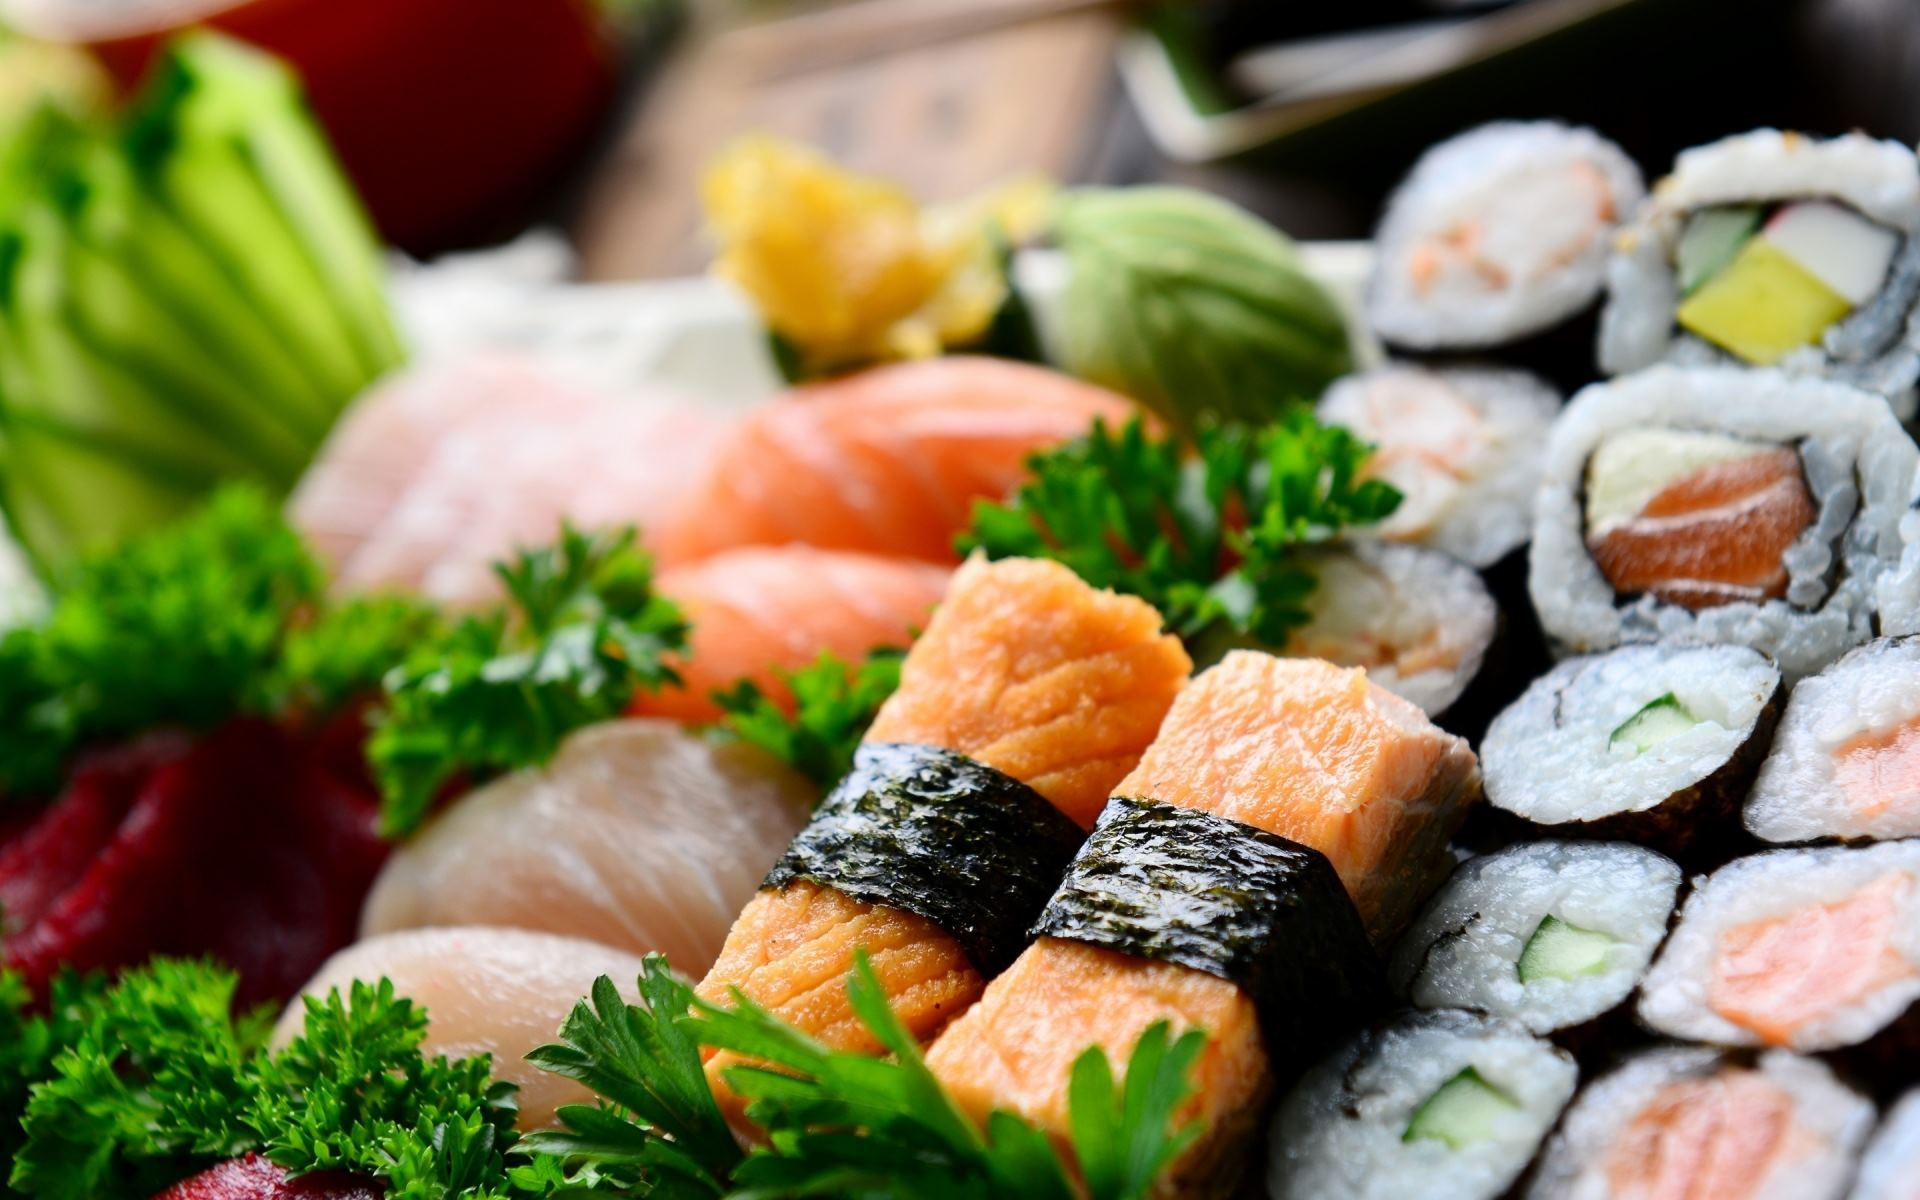 sushi-desktop-wallpaper-hd-49731-51410-hd-wallpapers